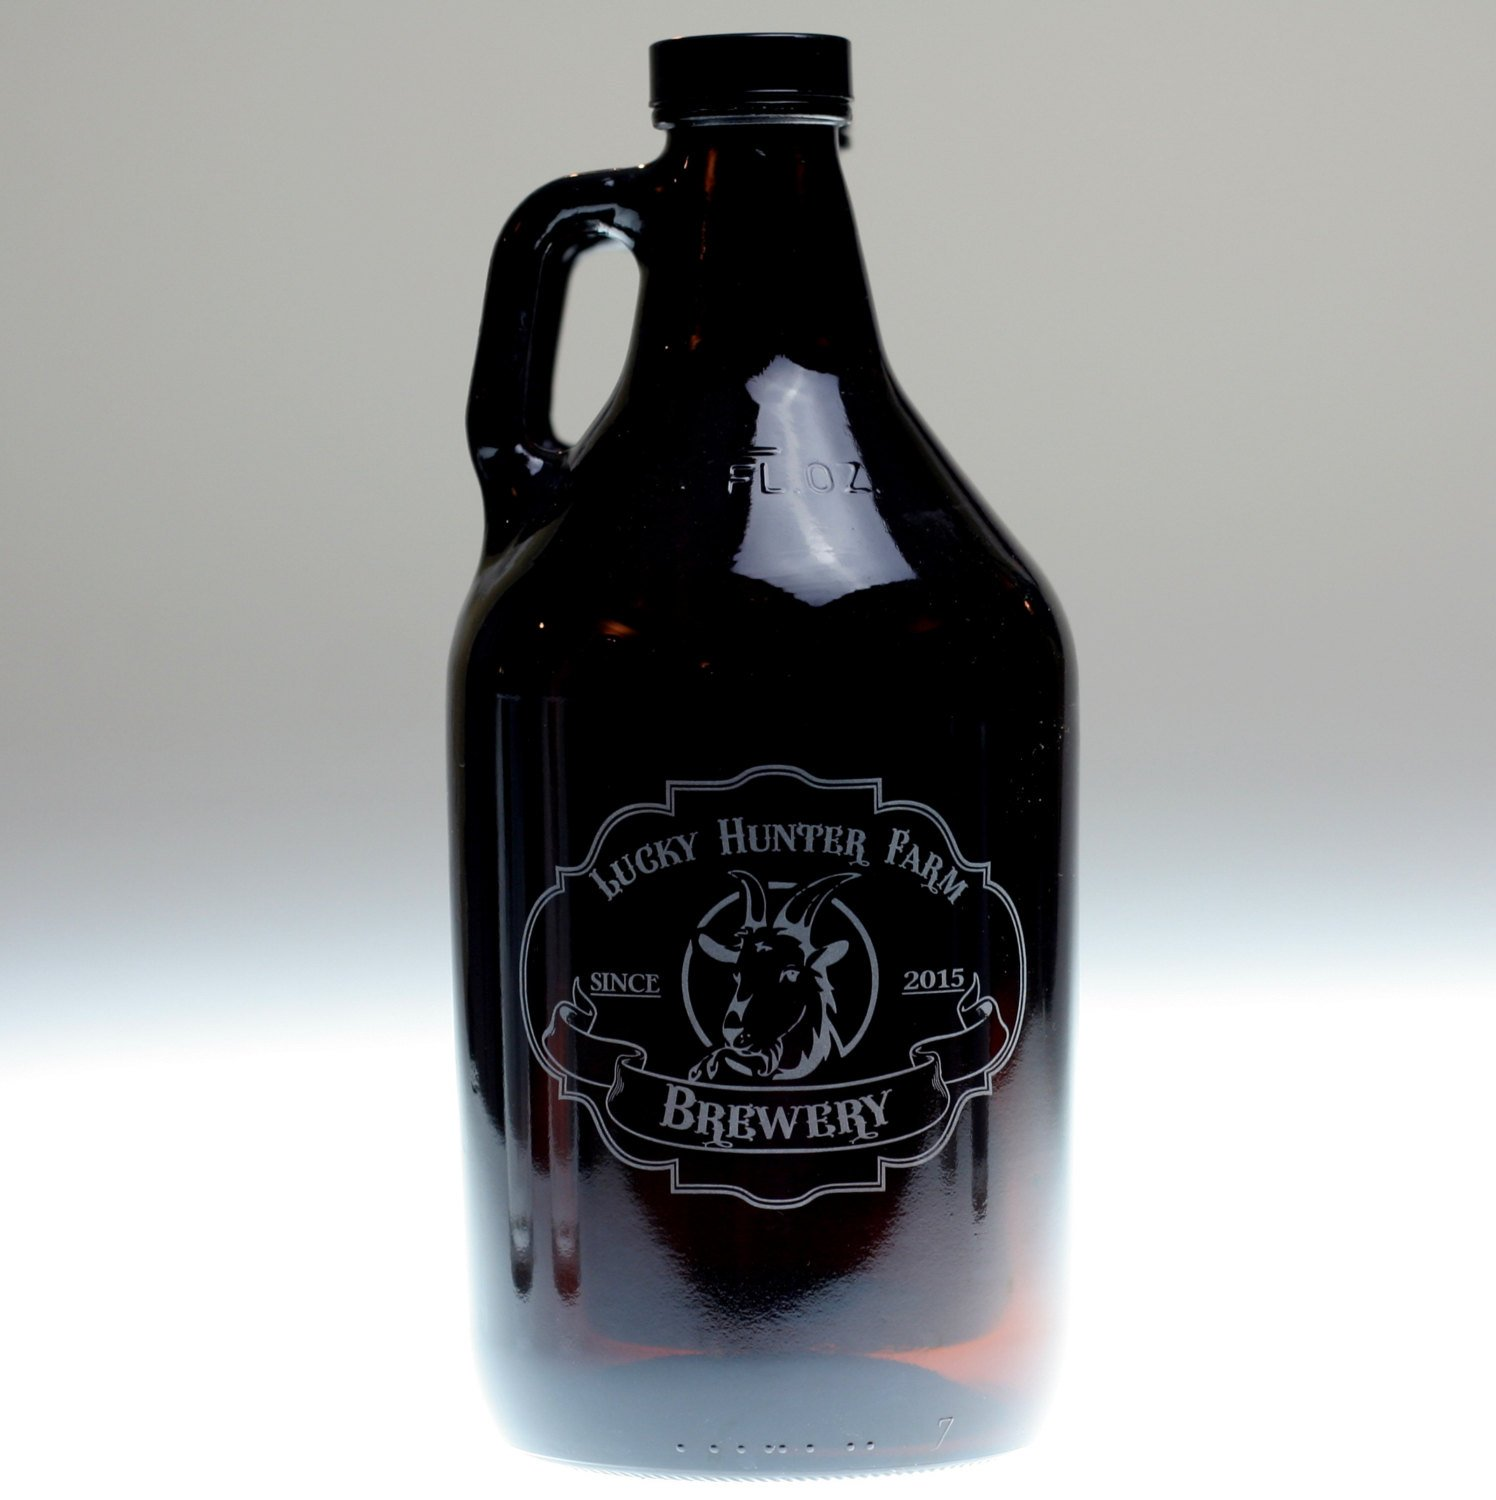 Personalized Engraved Beer Growler with Whimsical Animal as Focus